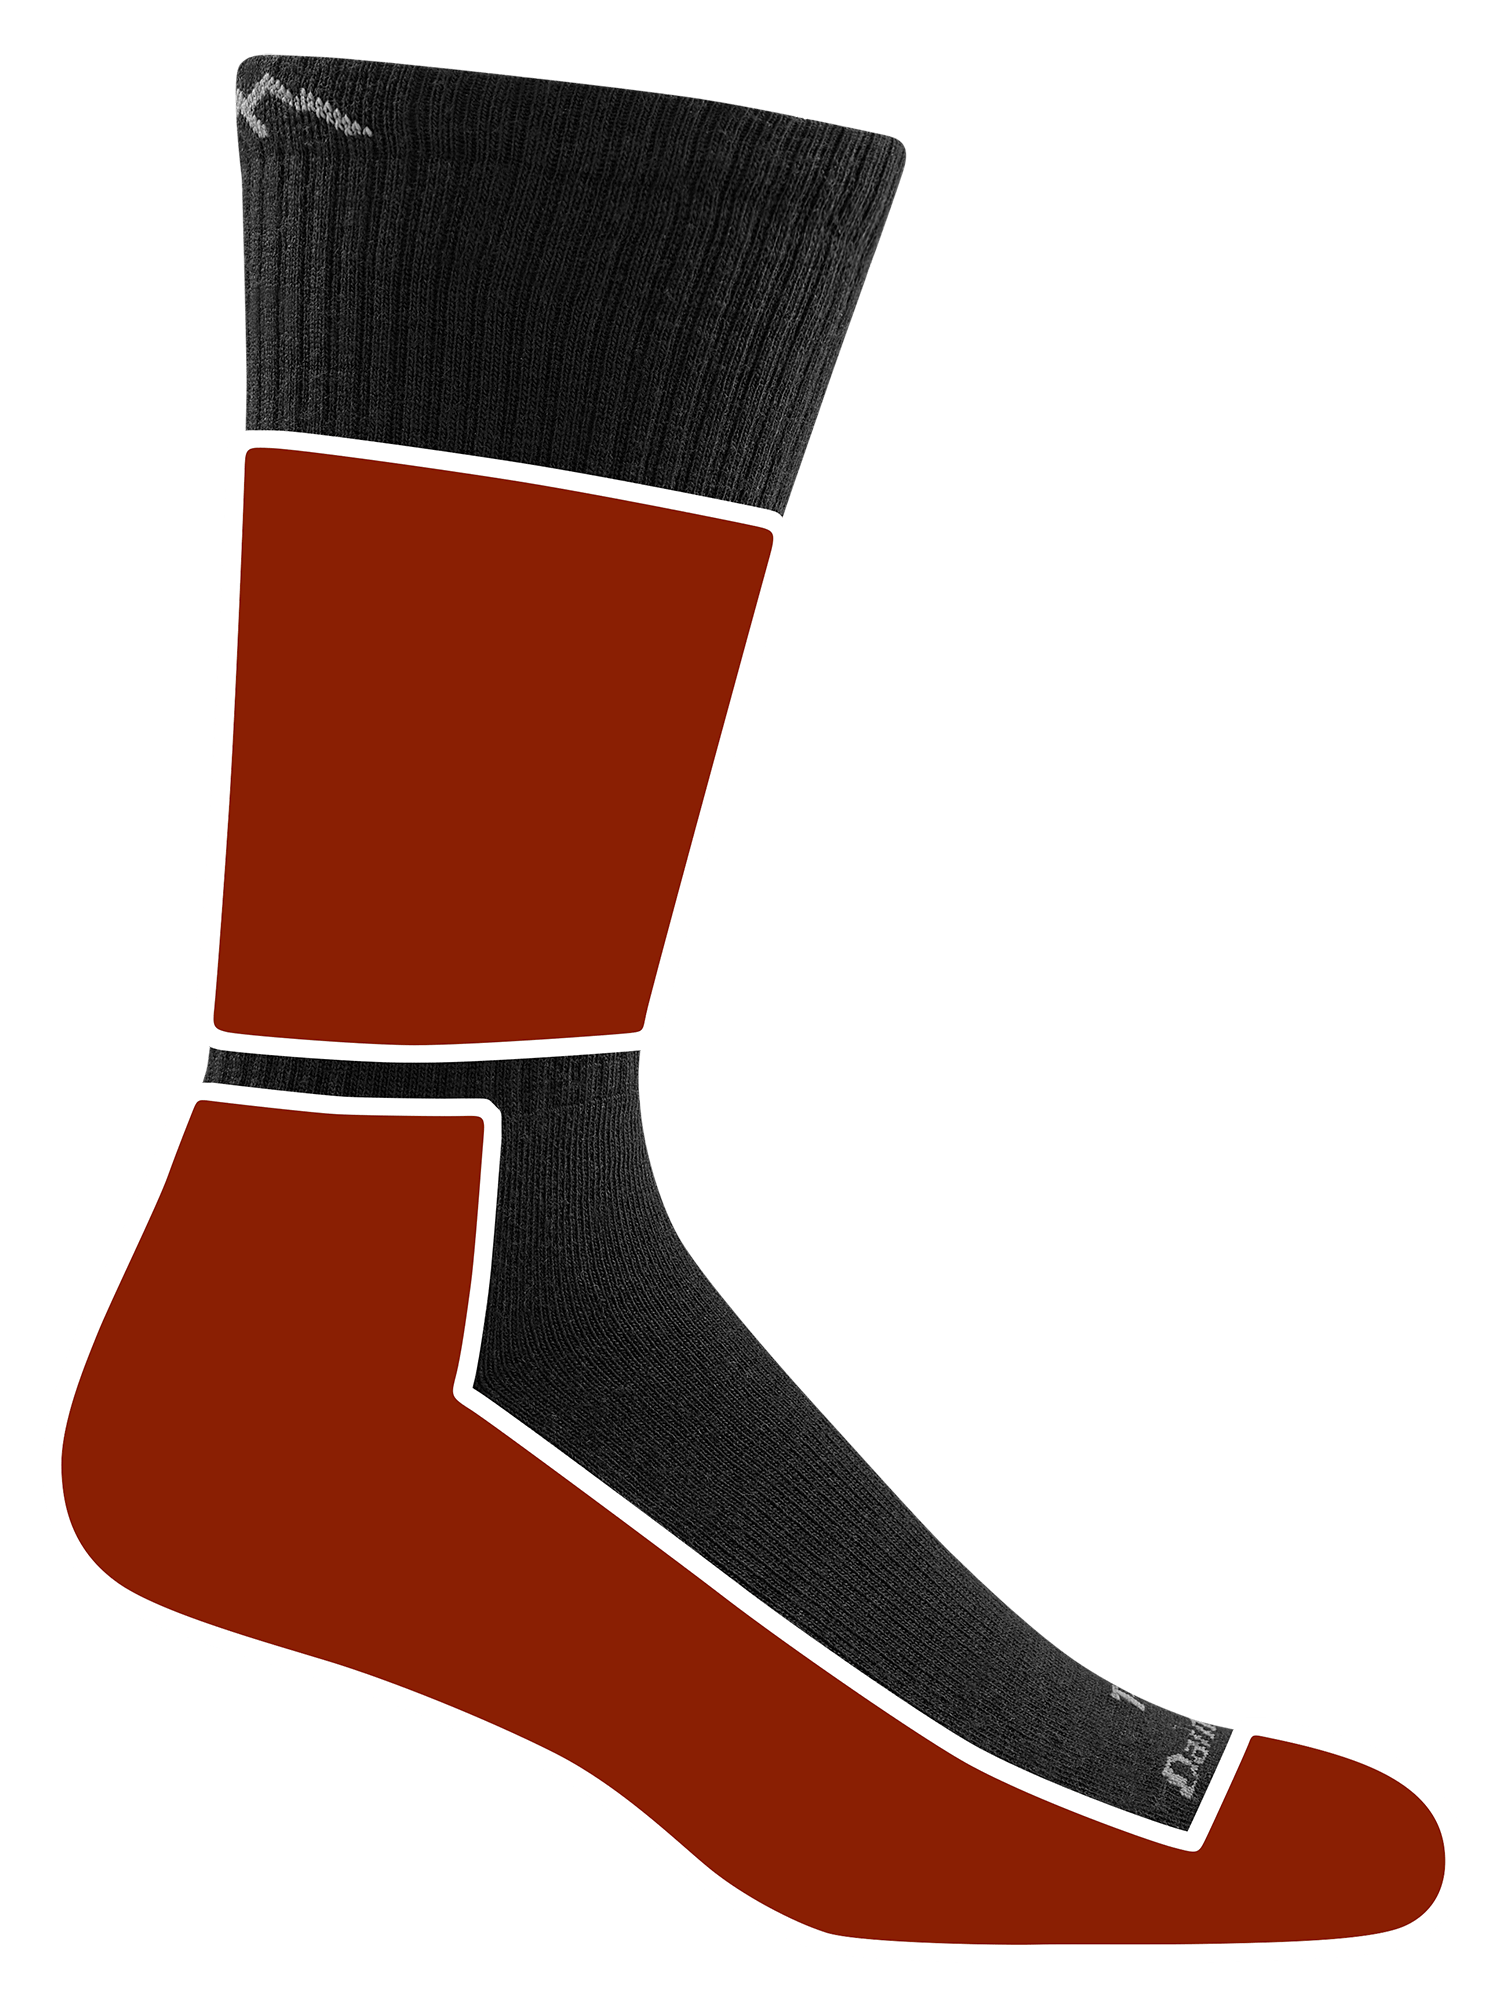 Cushion Location: The Tactical socks with cushion provide added comfort and rebound underfoot and around the ankle.. Cushion Weight: Ideal for cooler climates, midweight socks in Tactical are considered the most versatile for changing environments and activities.